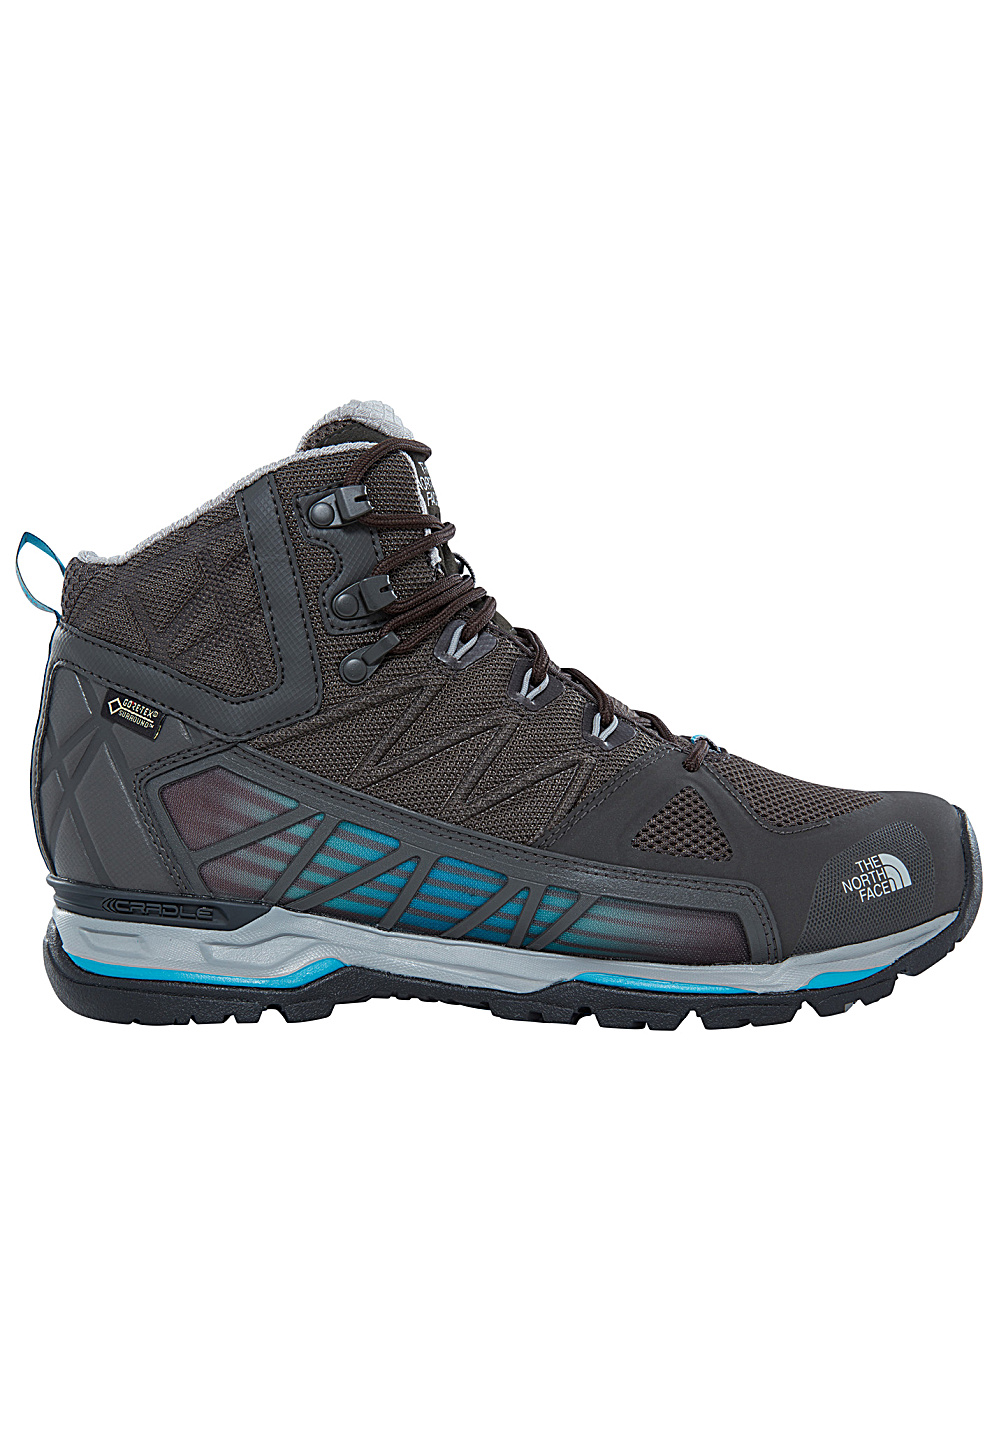 promo code d04ef 8486f THE NORTH FACE Ultra Fastpack II Mid GTX - Hiking Shoes for Men - Grey